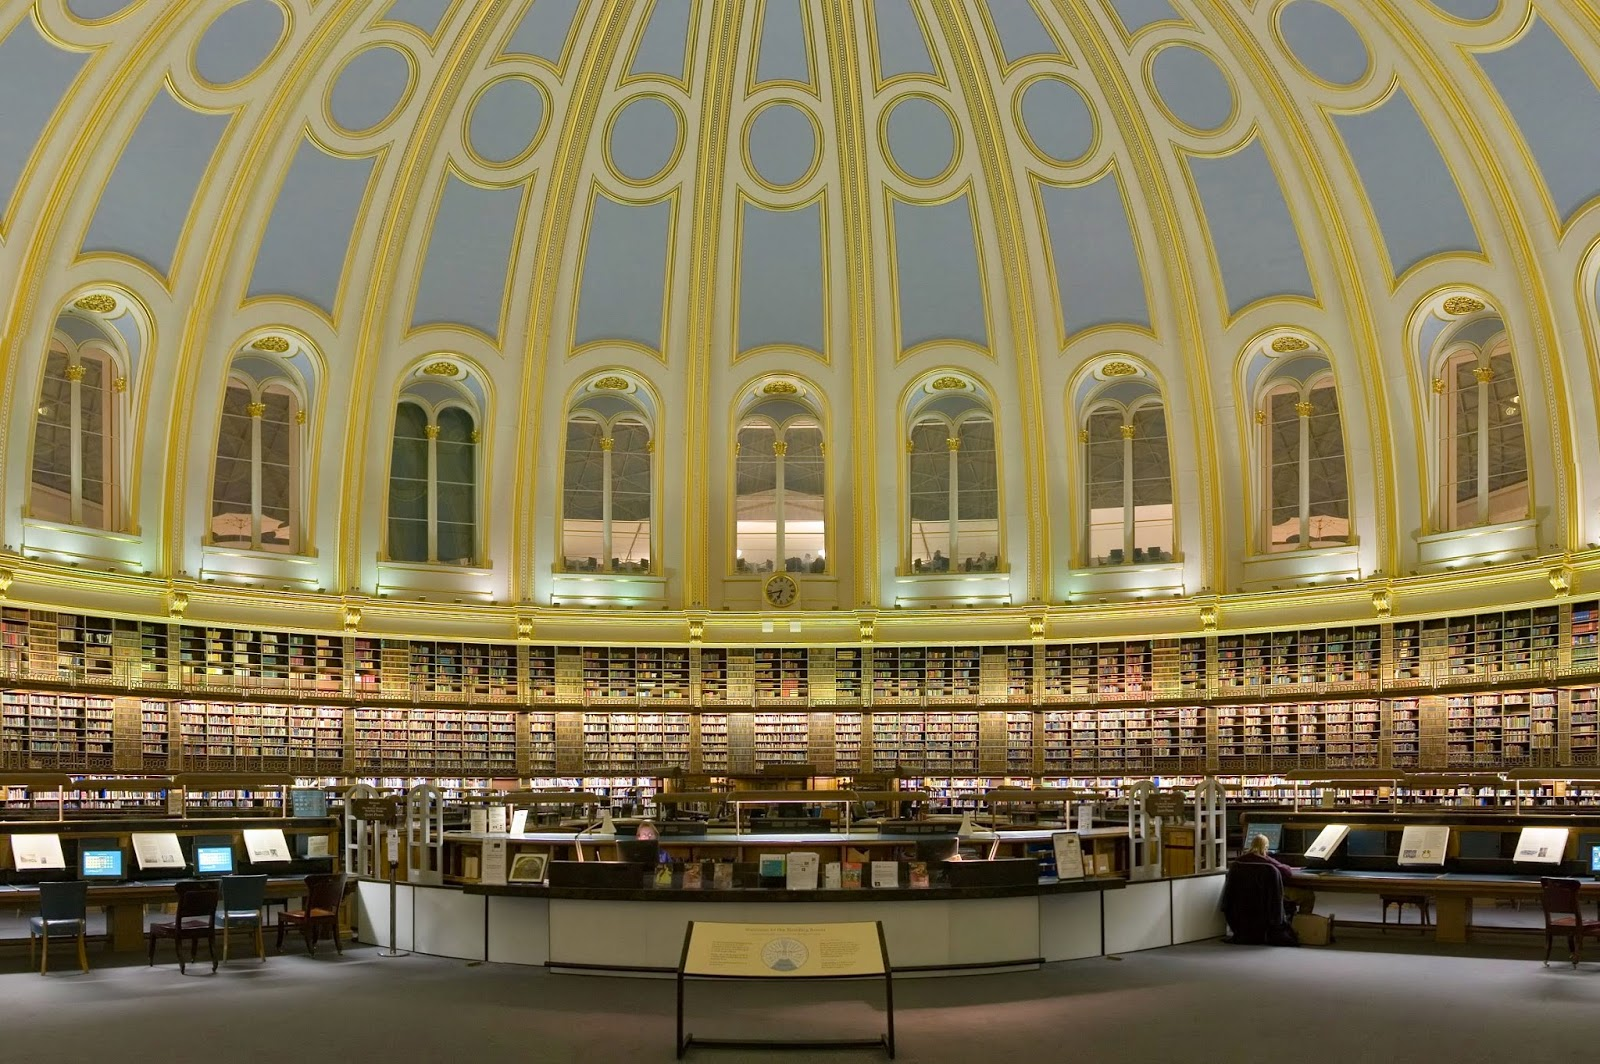 http://www.bestonedesign.com/reading-room-interior-design-in-british-museum